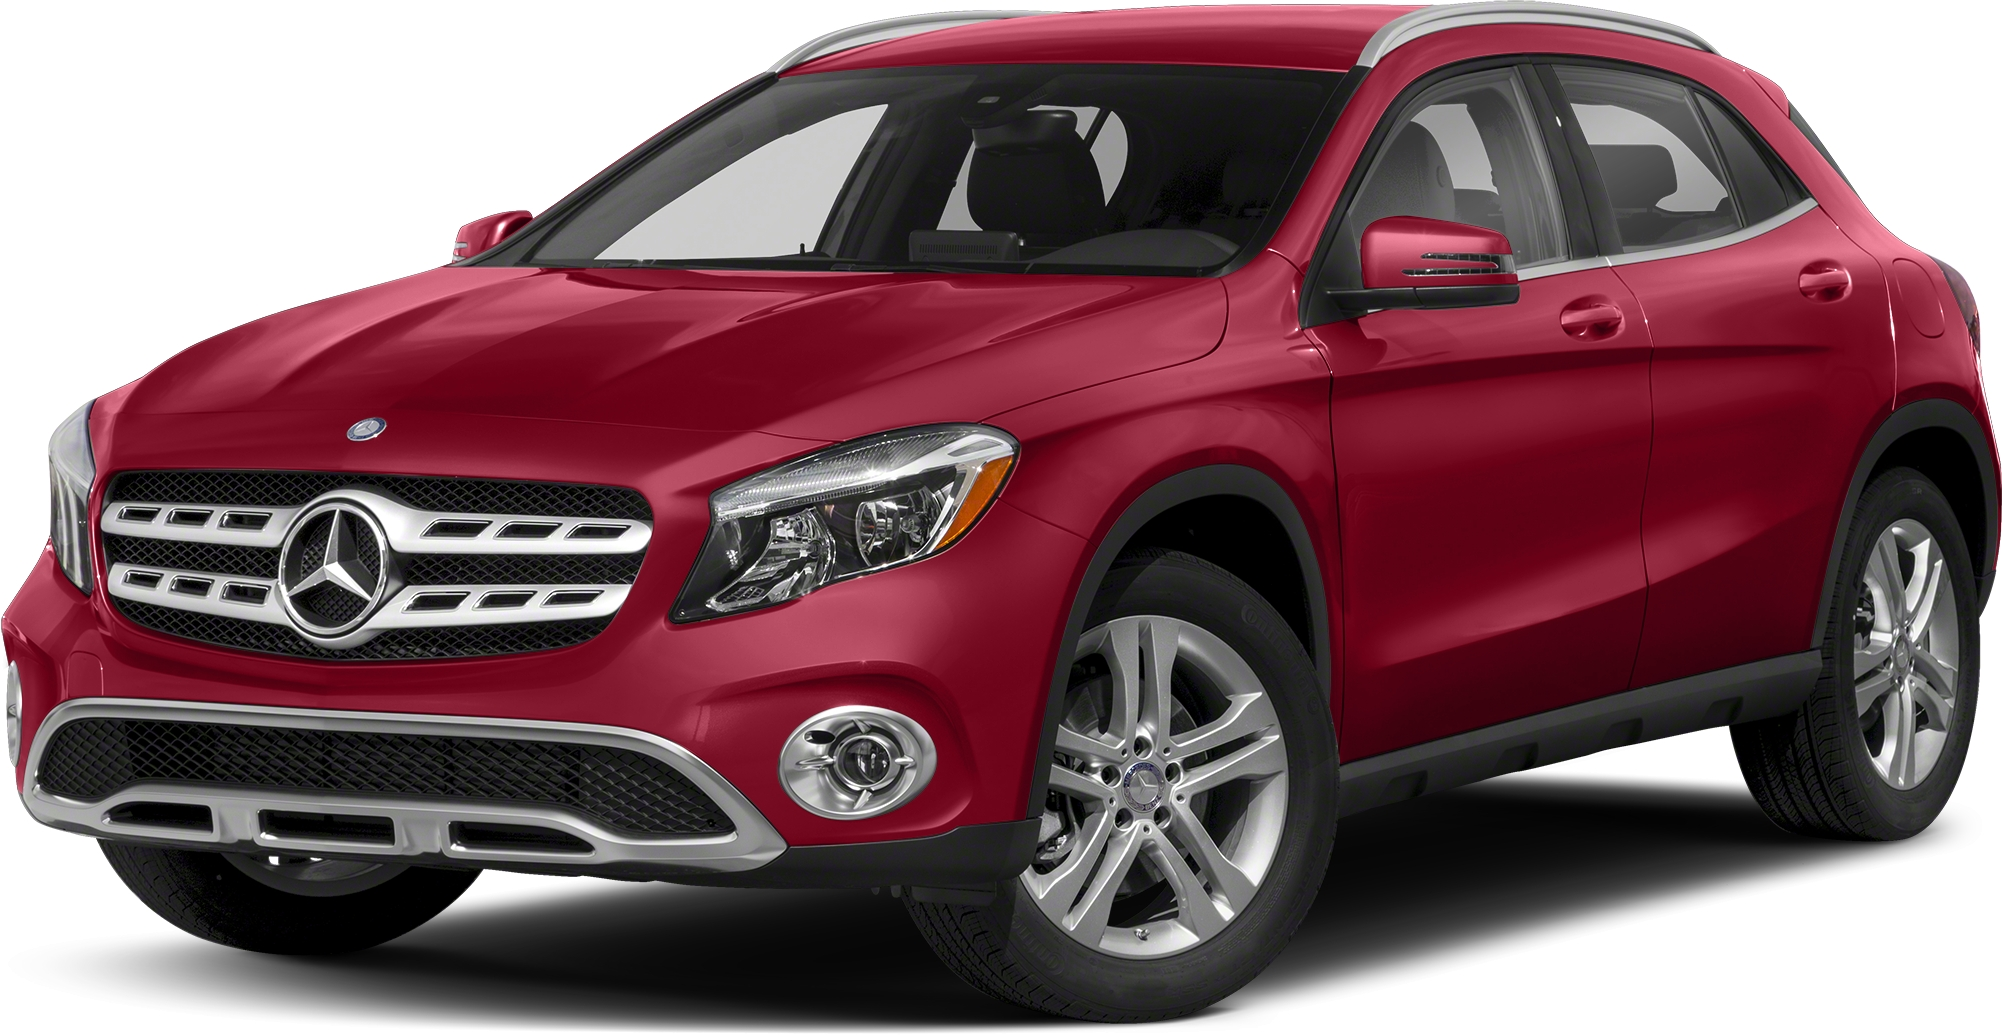 2019 mercedes benz gla 250 4matic suv 27415339 for sale price purchase lease near me. Black Bedroom Furniture Sets. Home Design Ideas